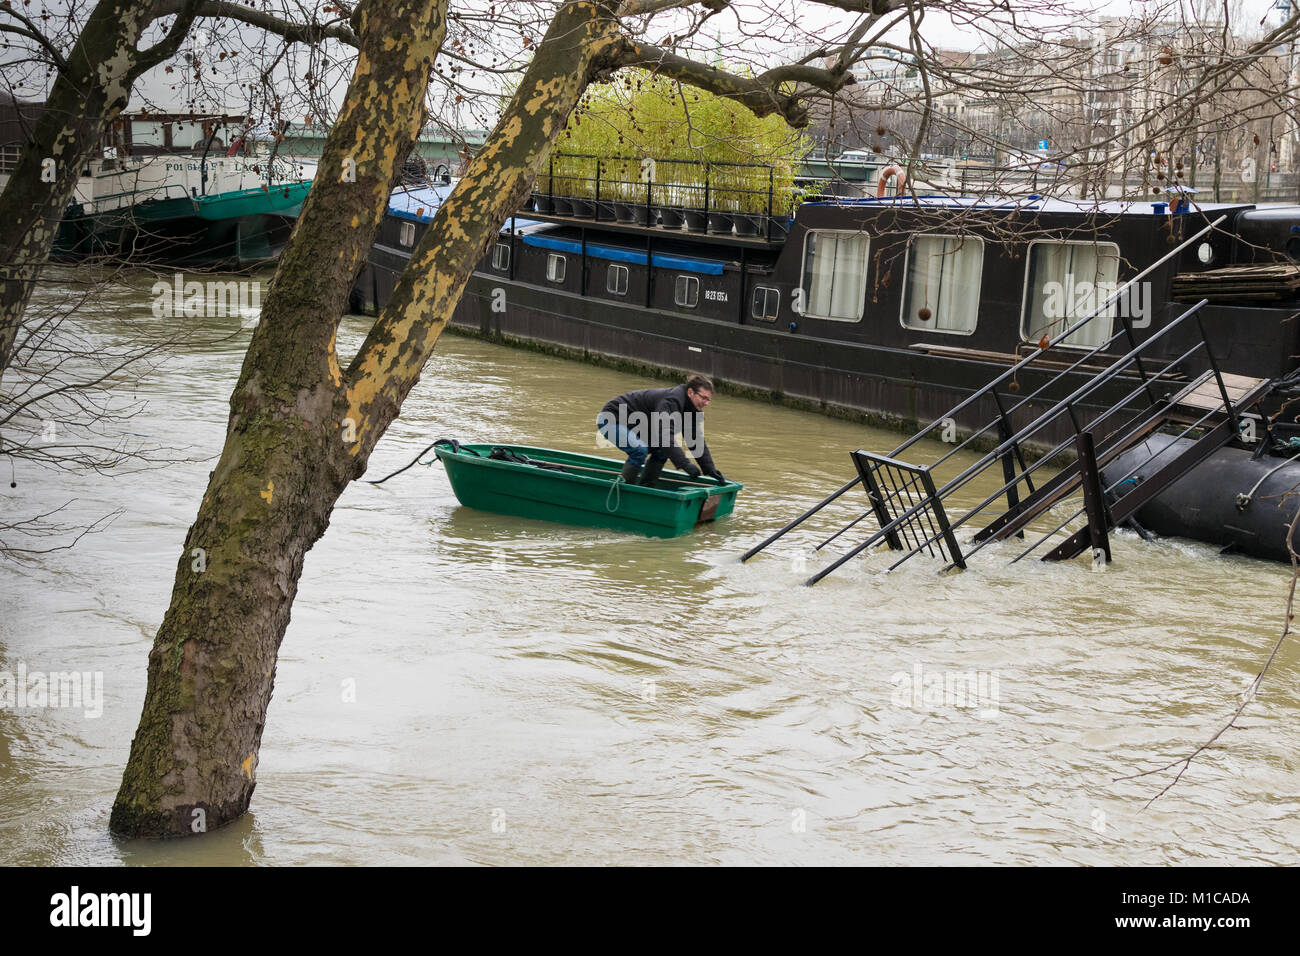 Paris, France. 28th Jan, 2018. Flood water making life difficult in Paris, River Seine in flood January 28 2018 - Stock Image